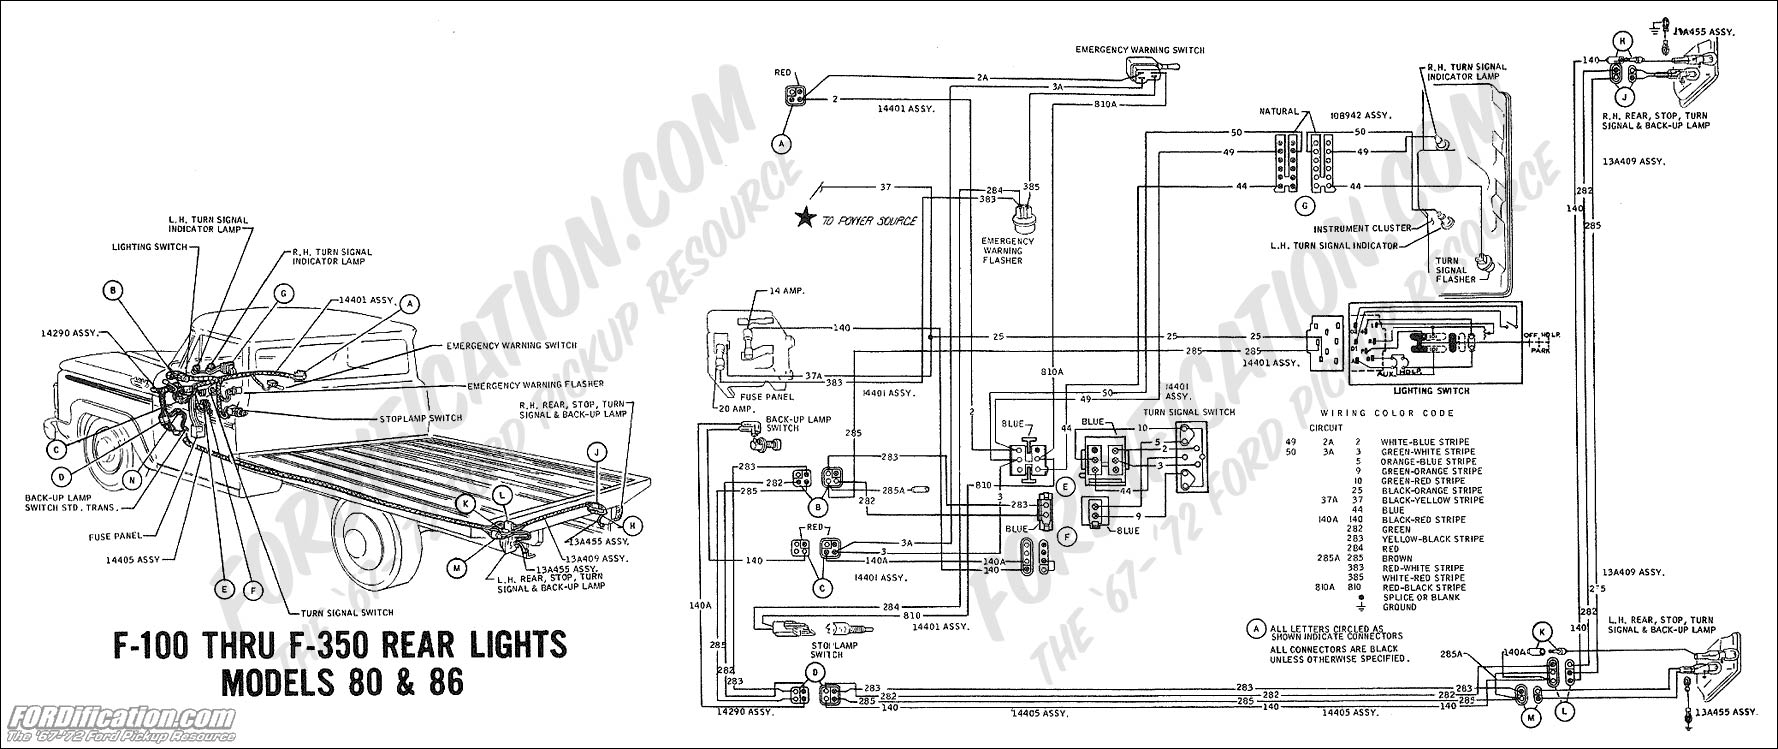 Schematics_h on Toyota 22re Engine Diagram